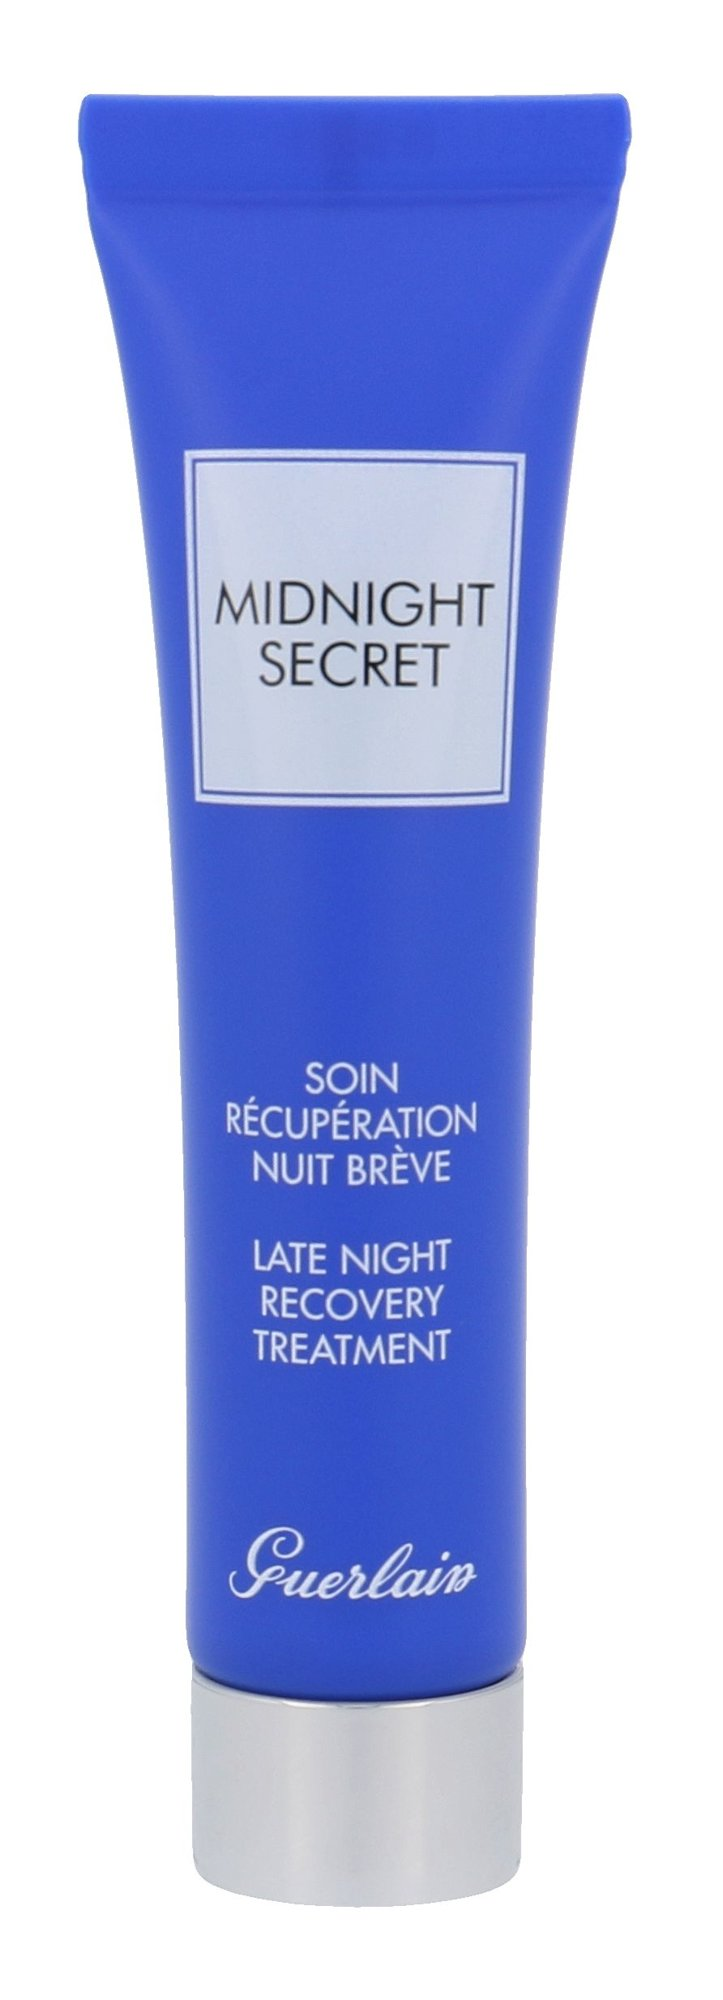 Guerlain Midnight Secret Late Night Recovery Treatment Cosmetic 15ml